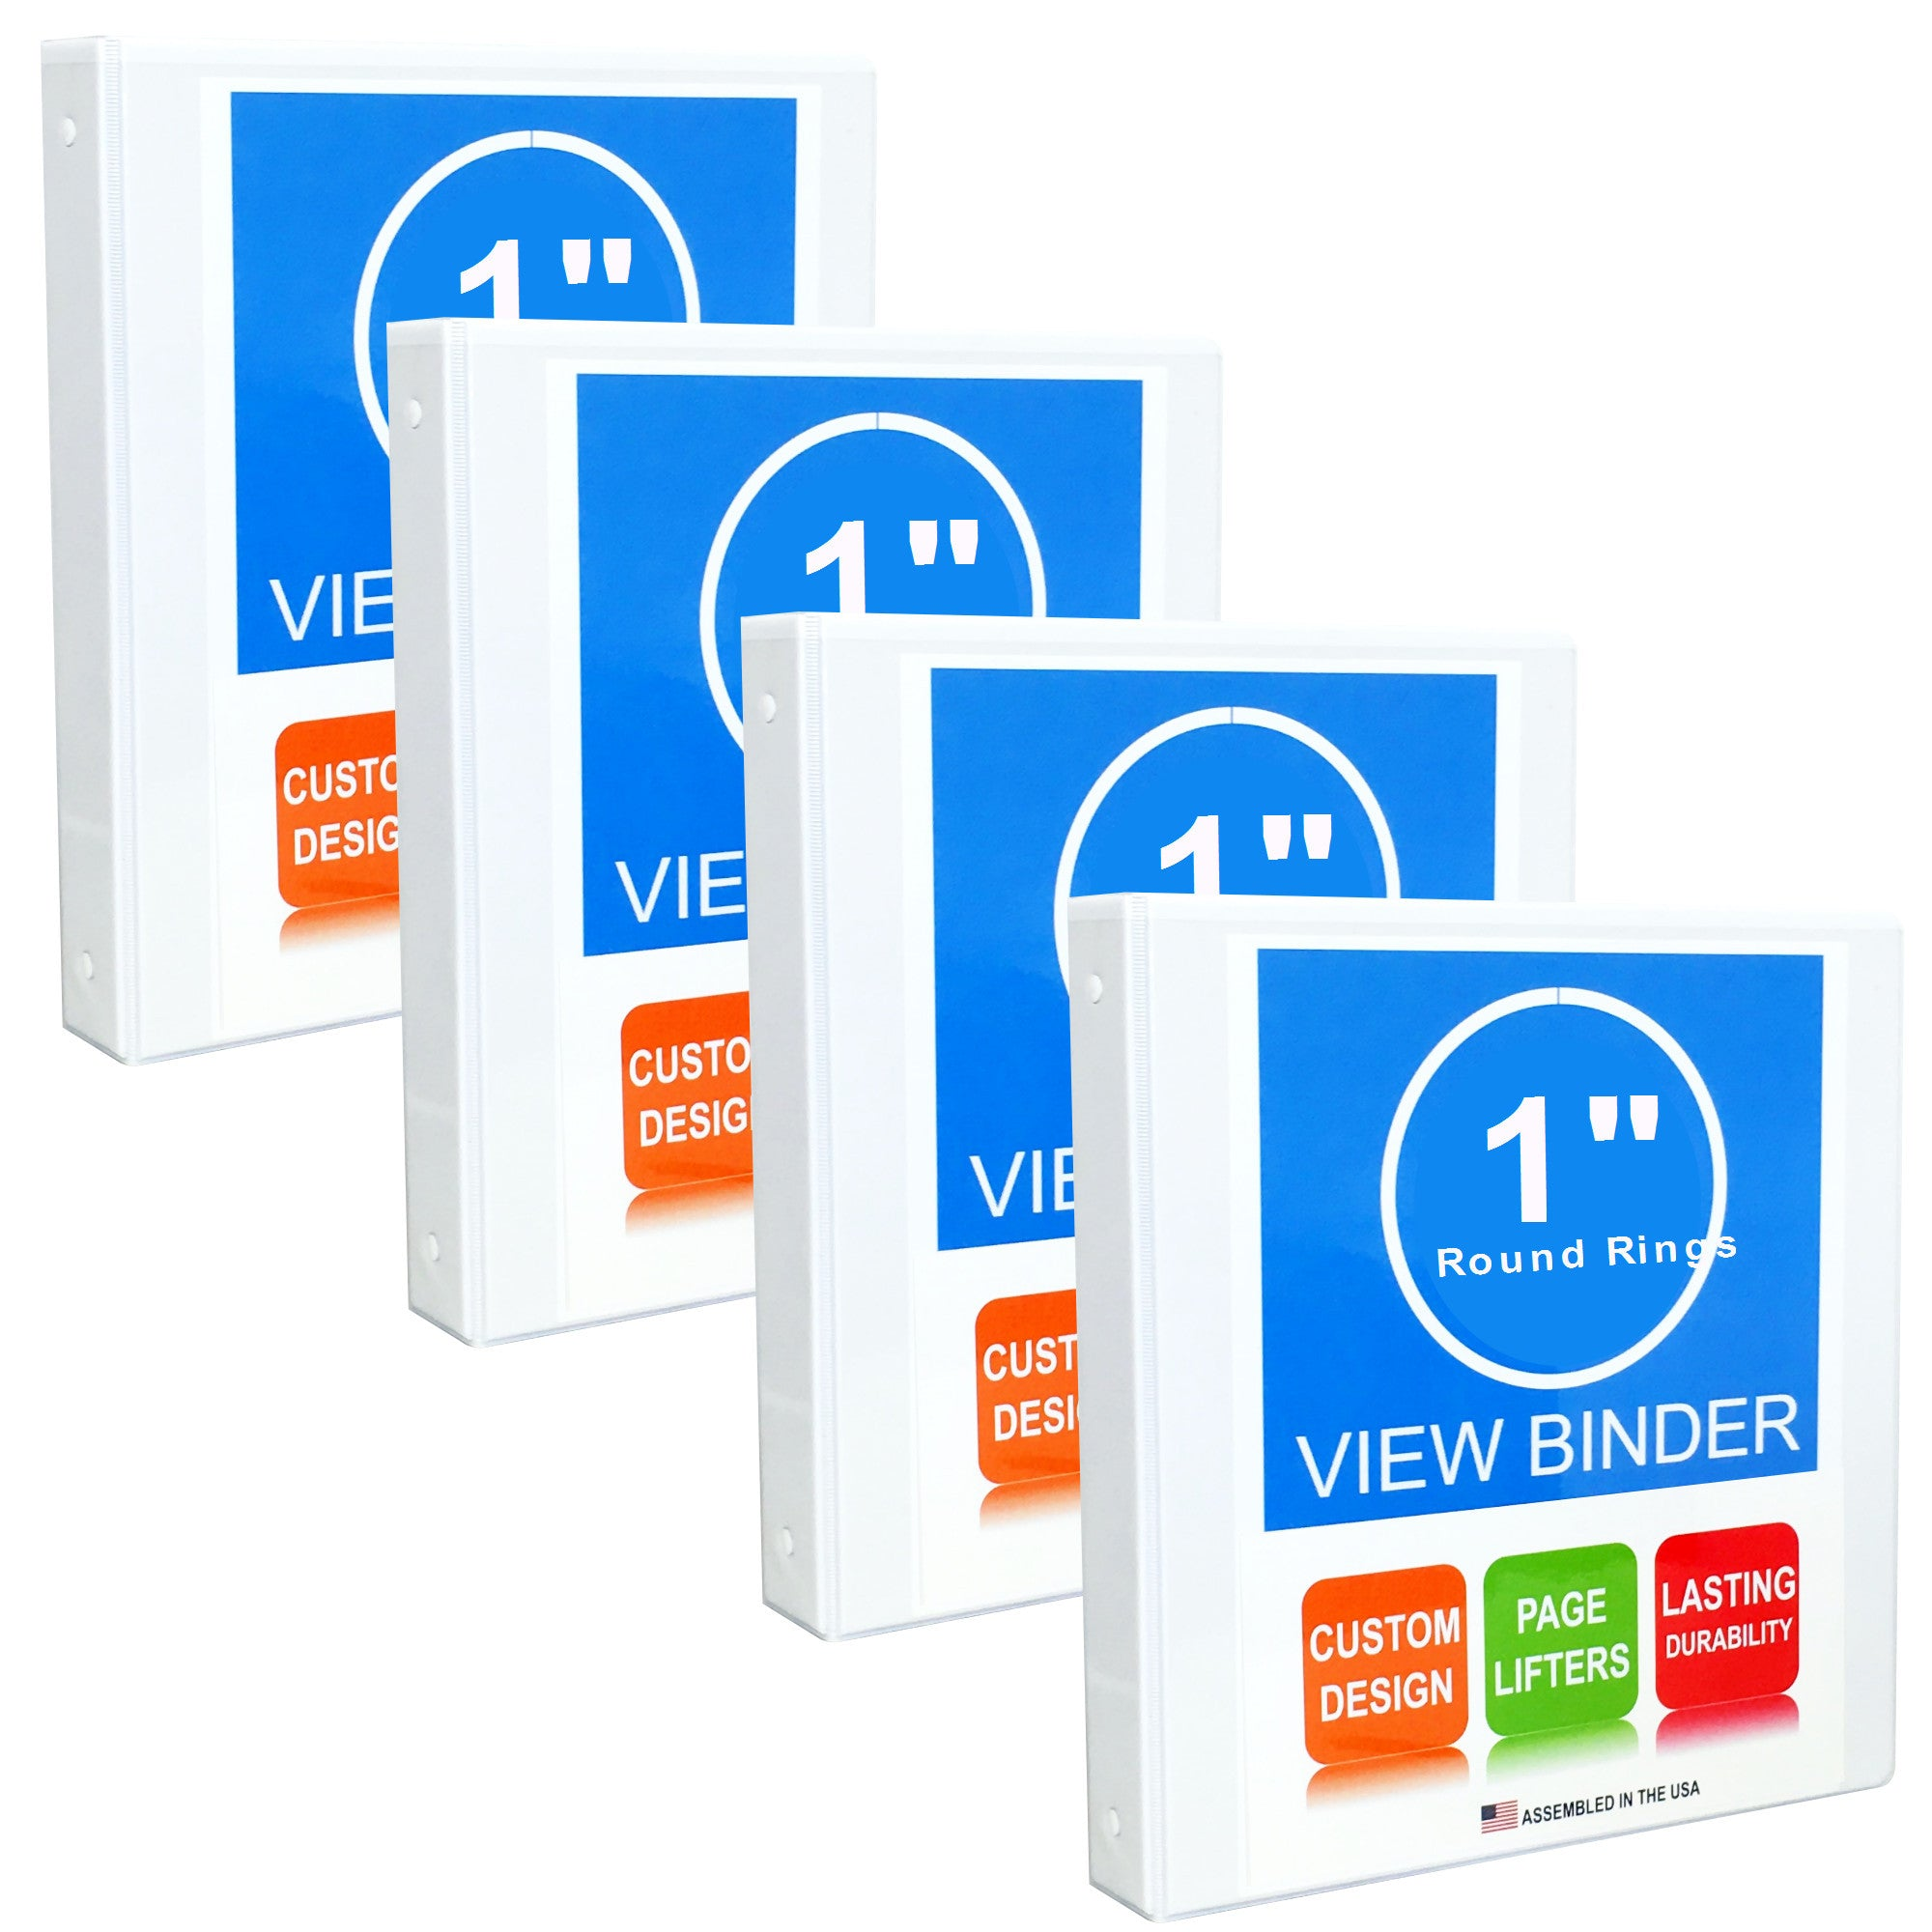 3 Ring Binder, 1 Inch, White, Round Rings, Clear View, Pockets, 4 Pack - RingBinderDepot.com